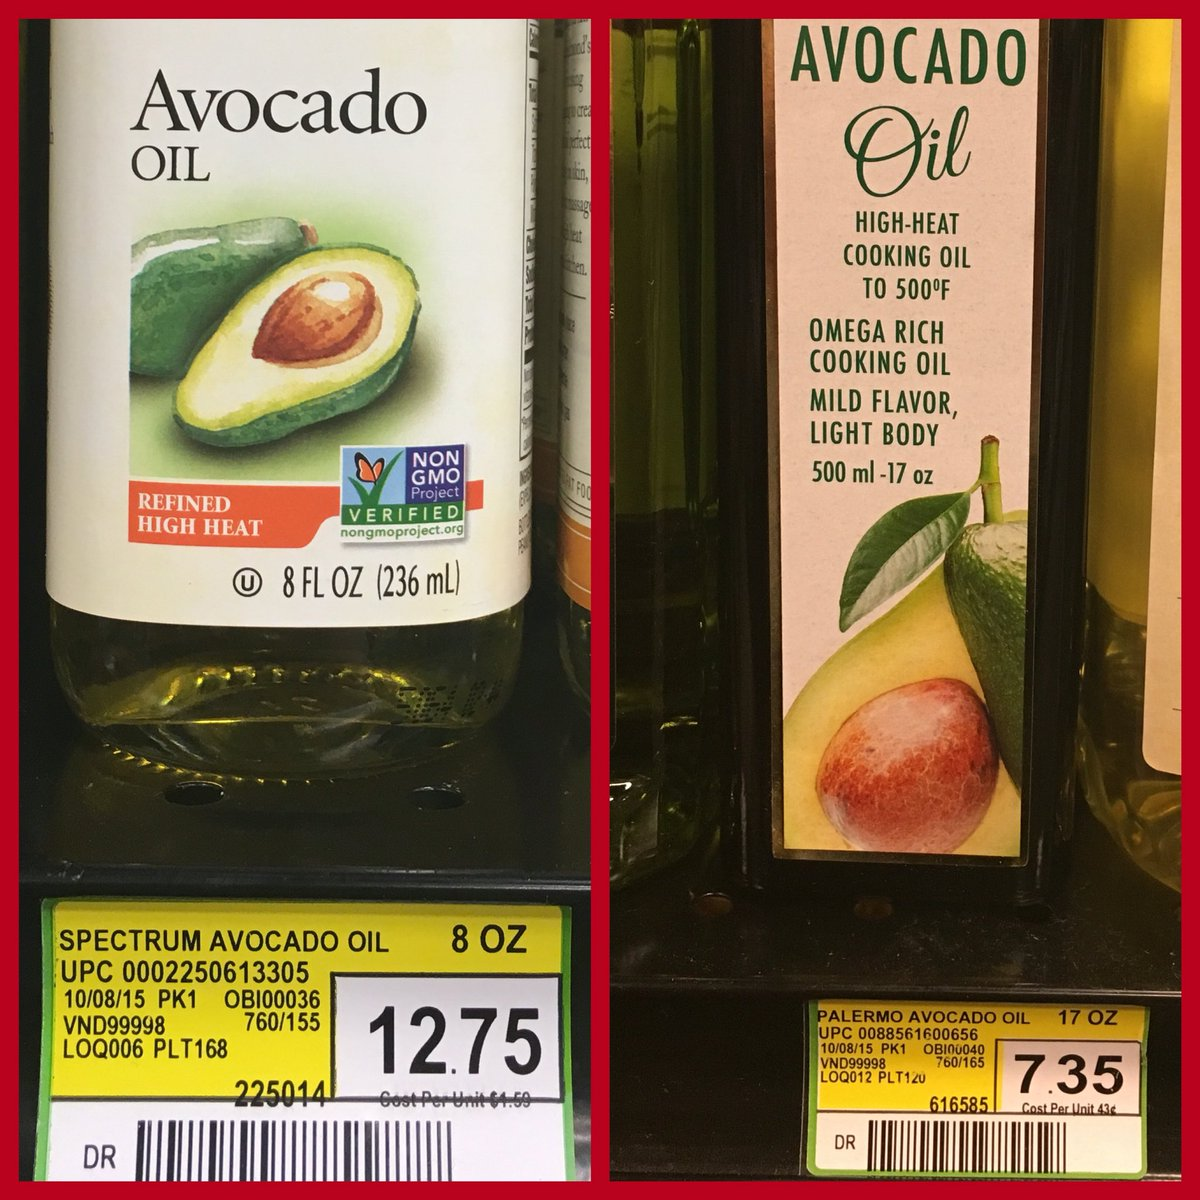 Both are non-#GMO because GMO avocados don't exist...yet the artificial premium is quite strong with this one: https://t.co/C9WE9fEV2G